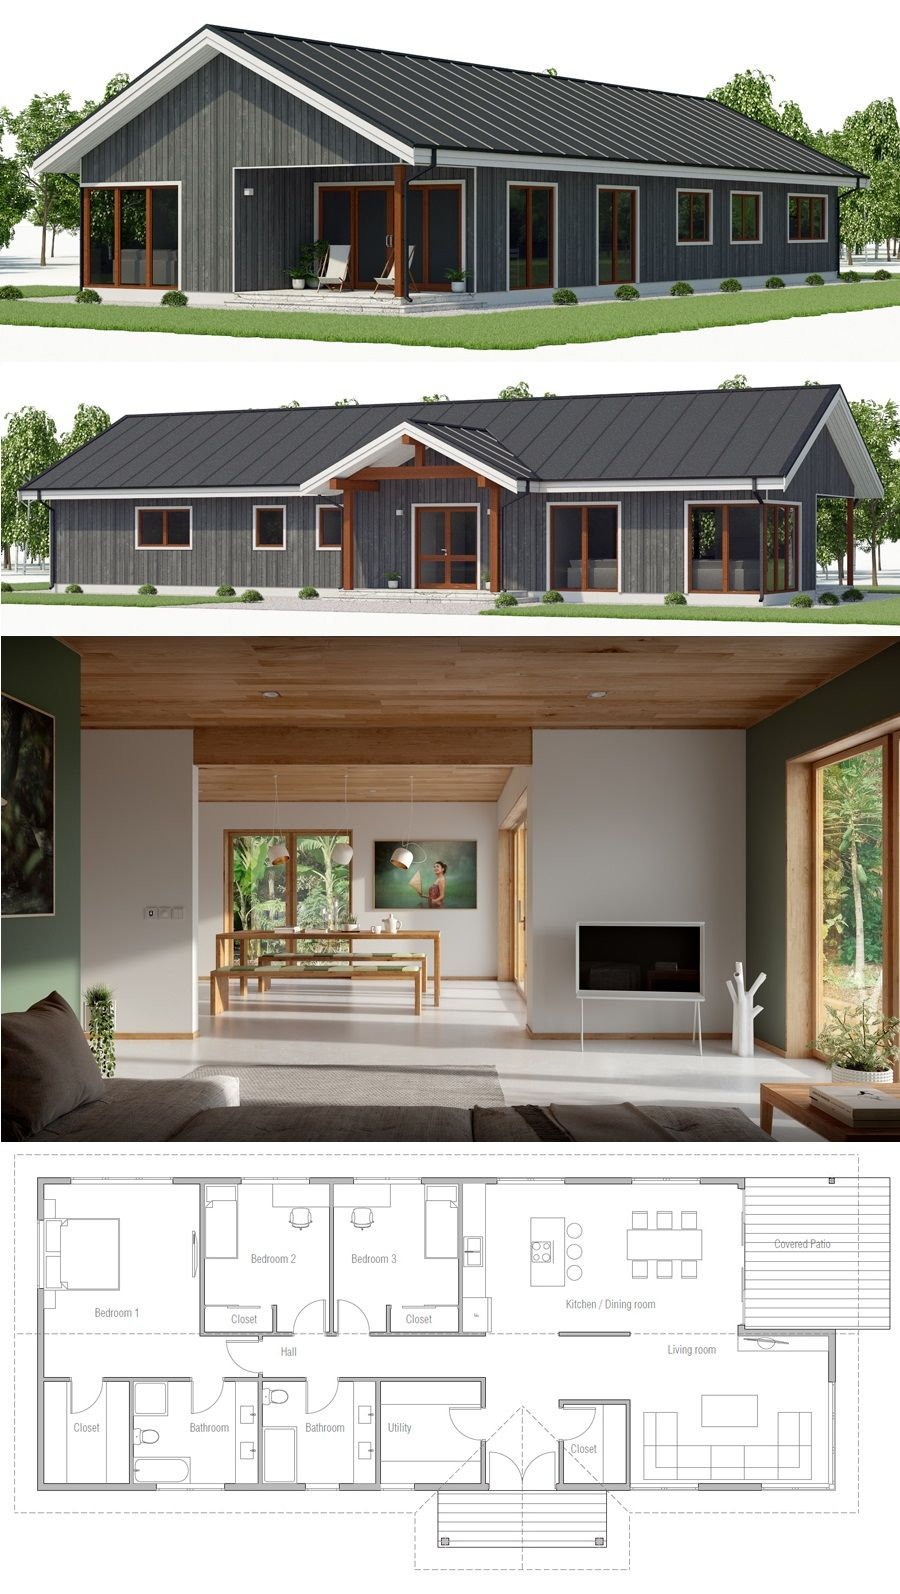 Prefab Houses Modular Home Plans Small House Plans House